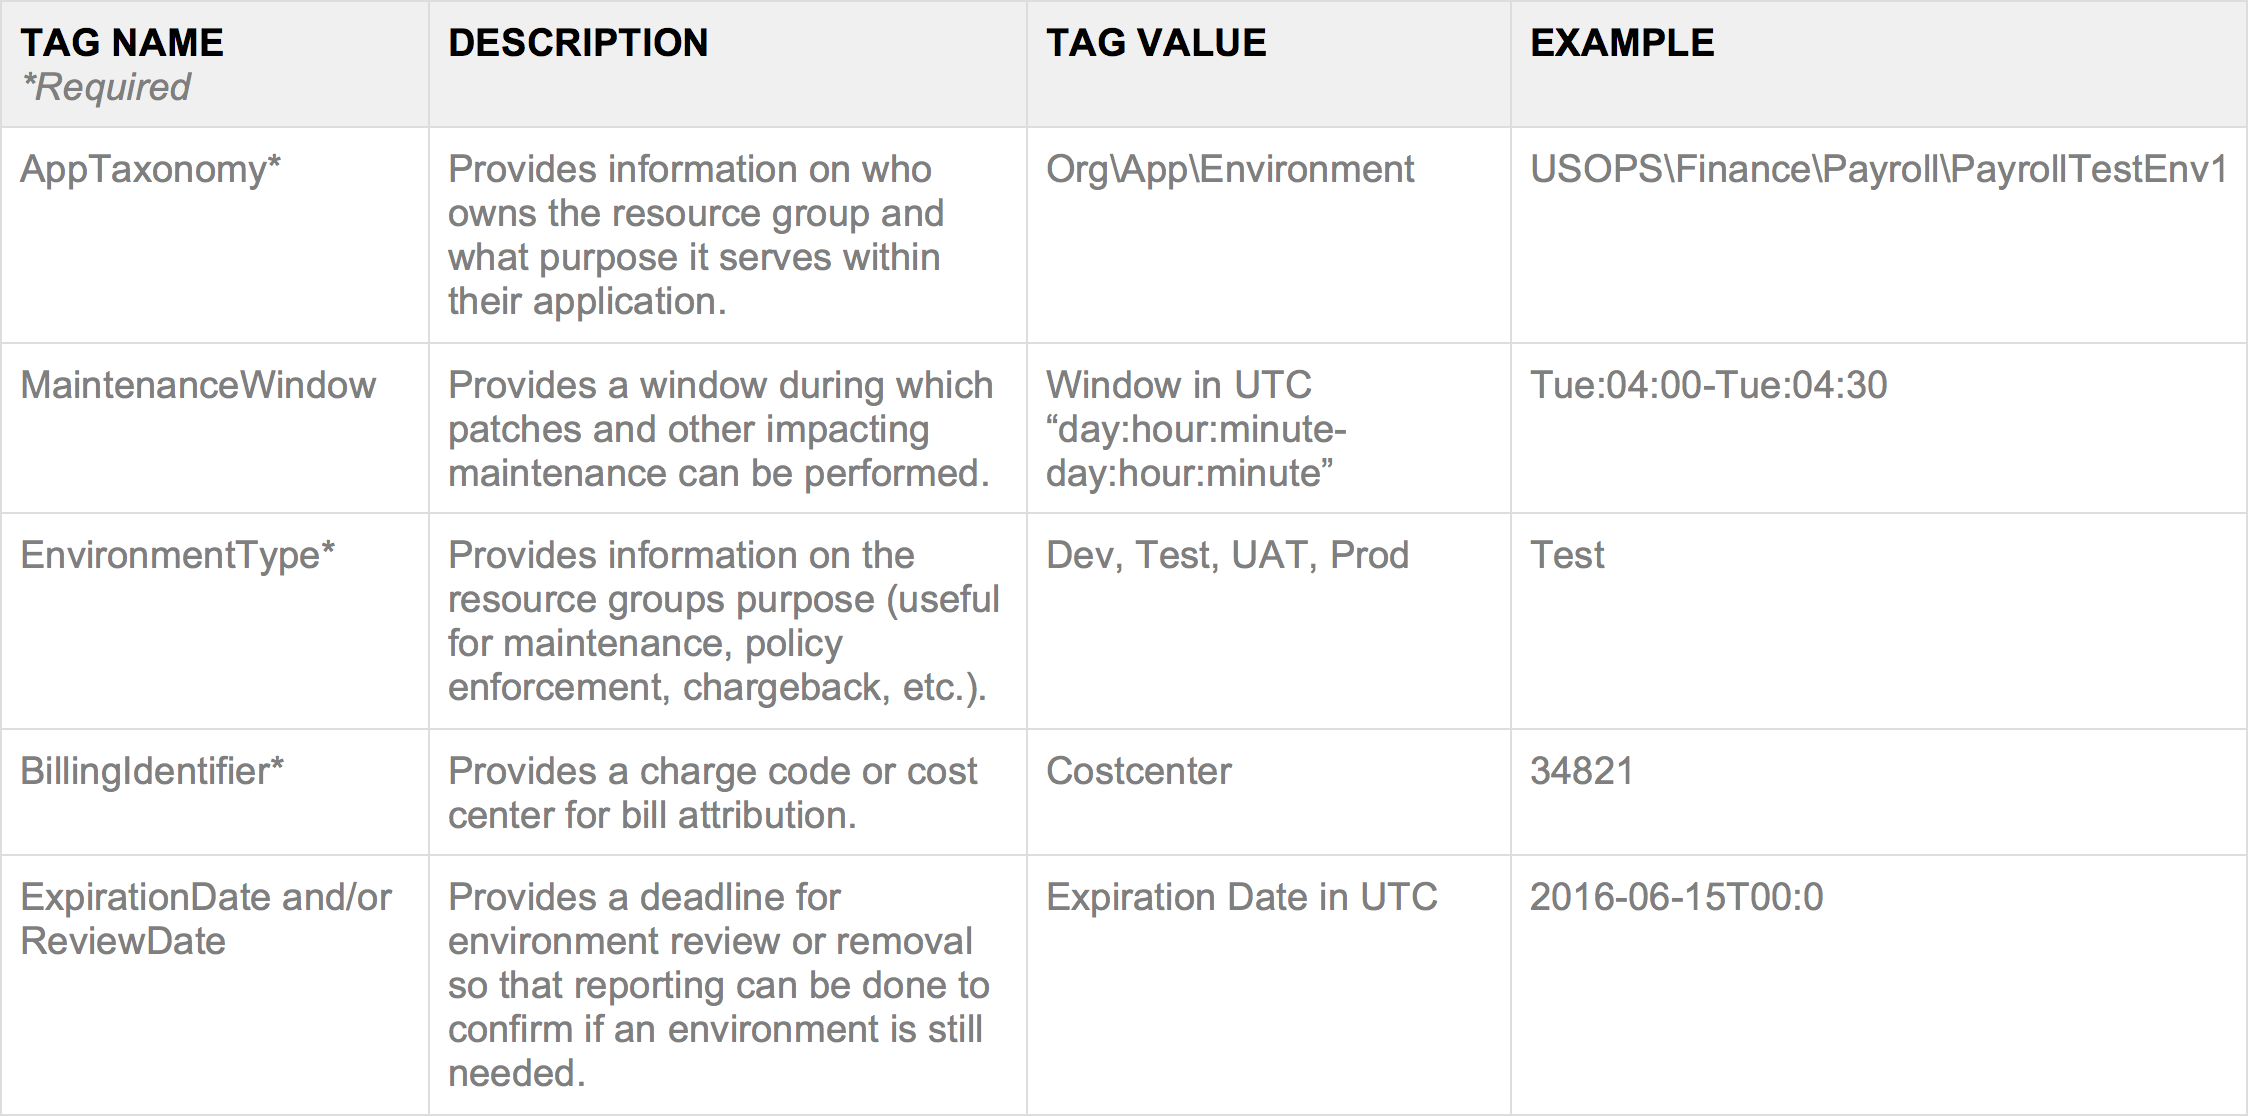 Azure-Tagging-System-Proposed-Tags.png